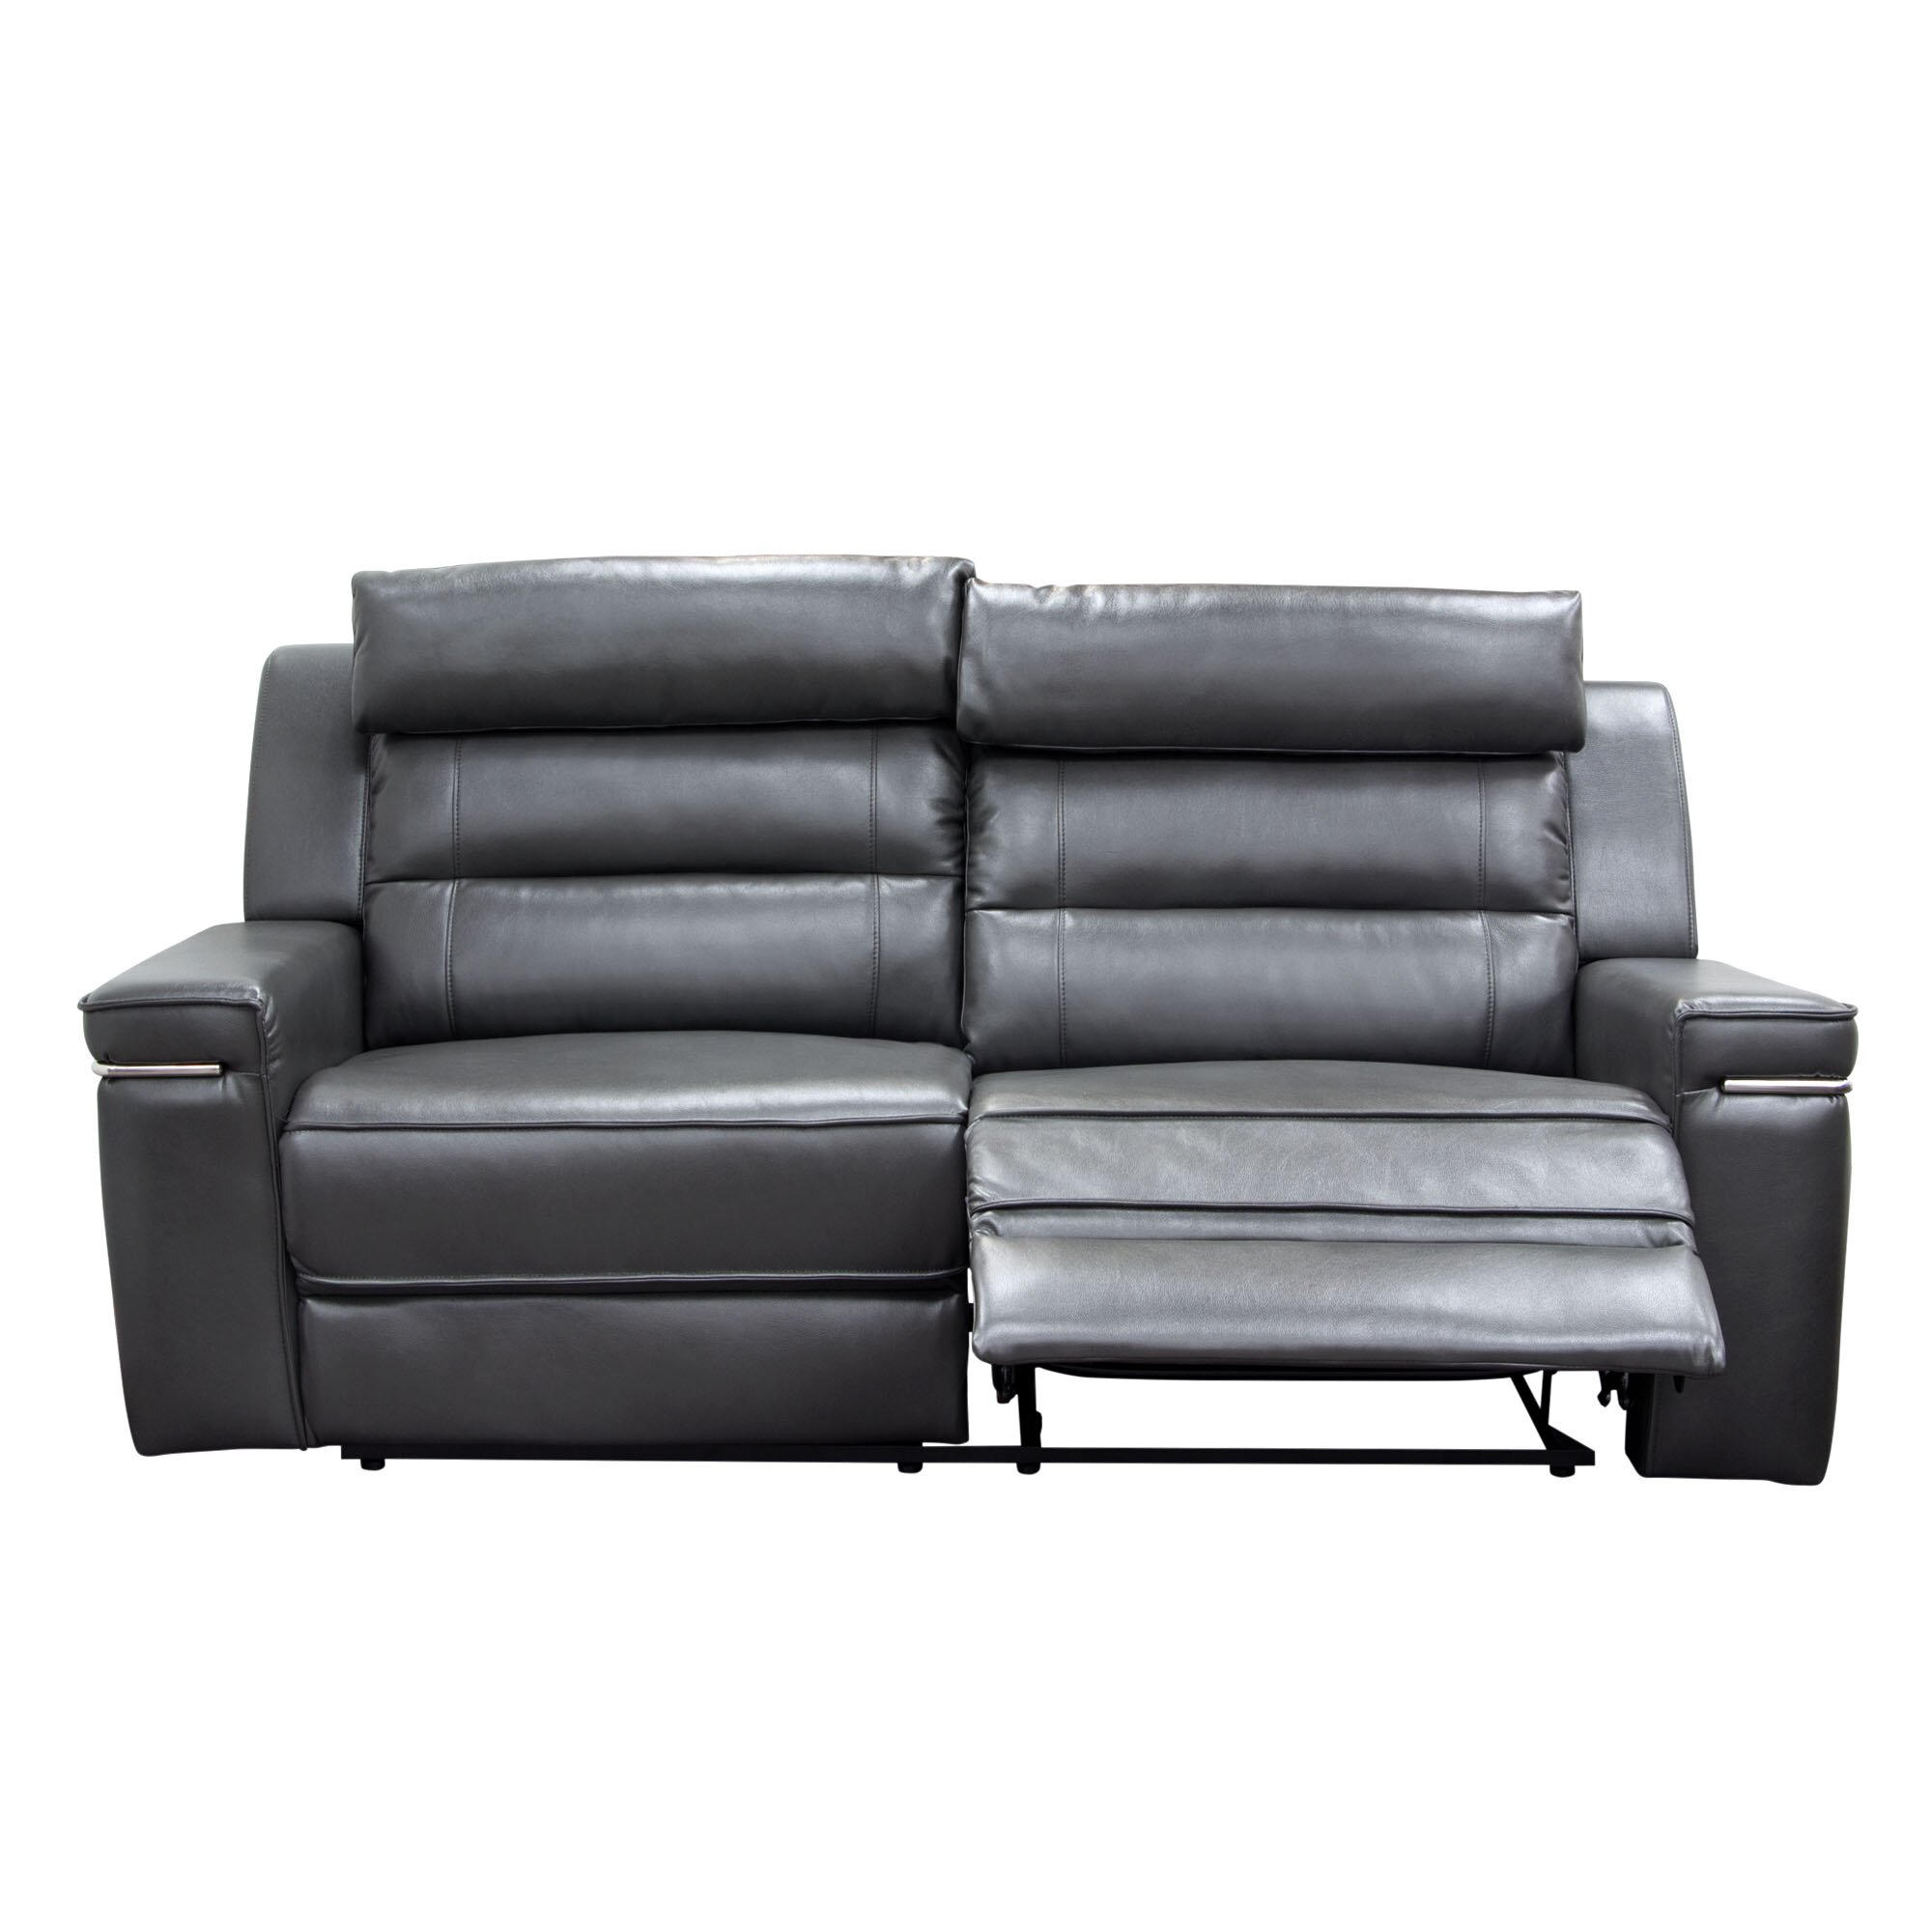 Diamond Sofa Duncan Leather Dual Reclining Loveseat Reviews Wayfair